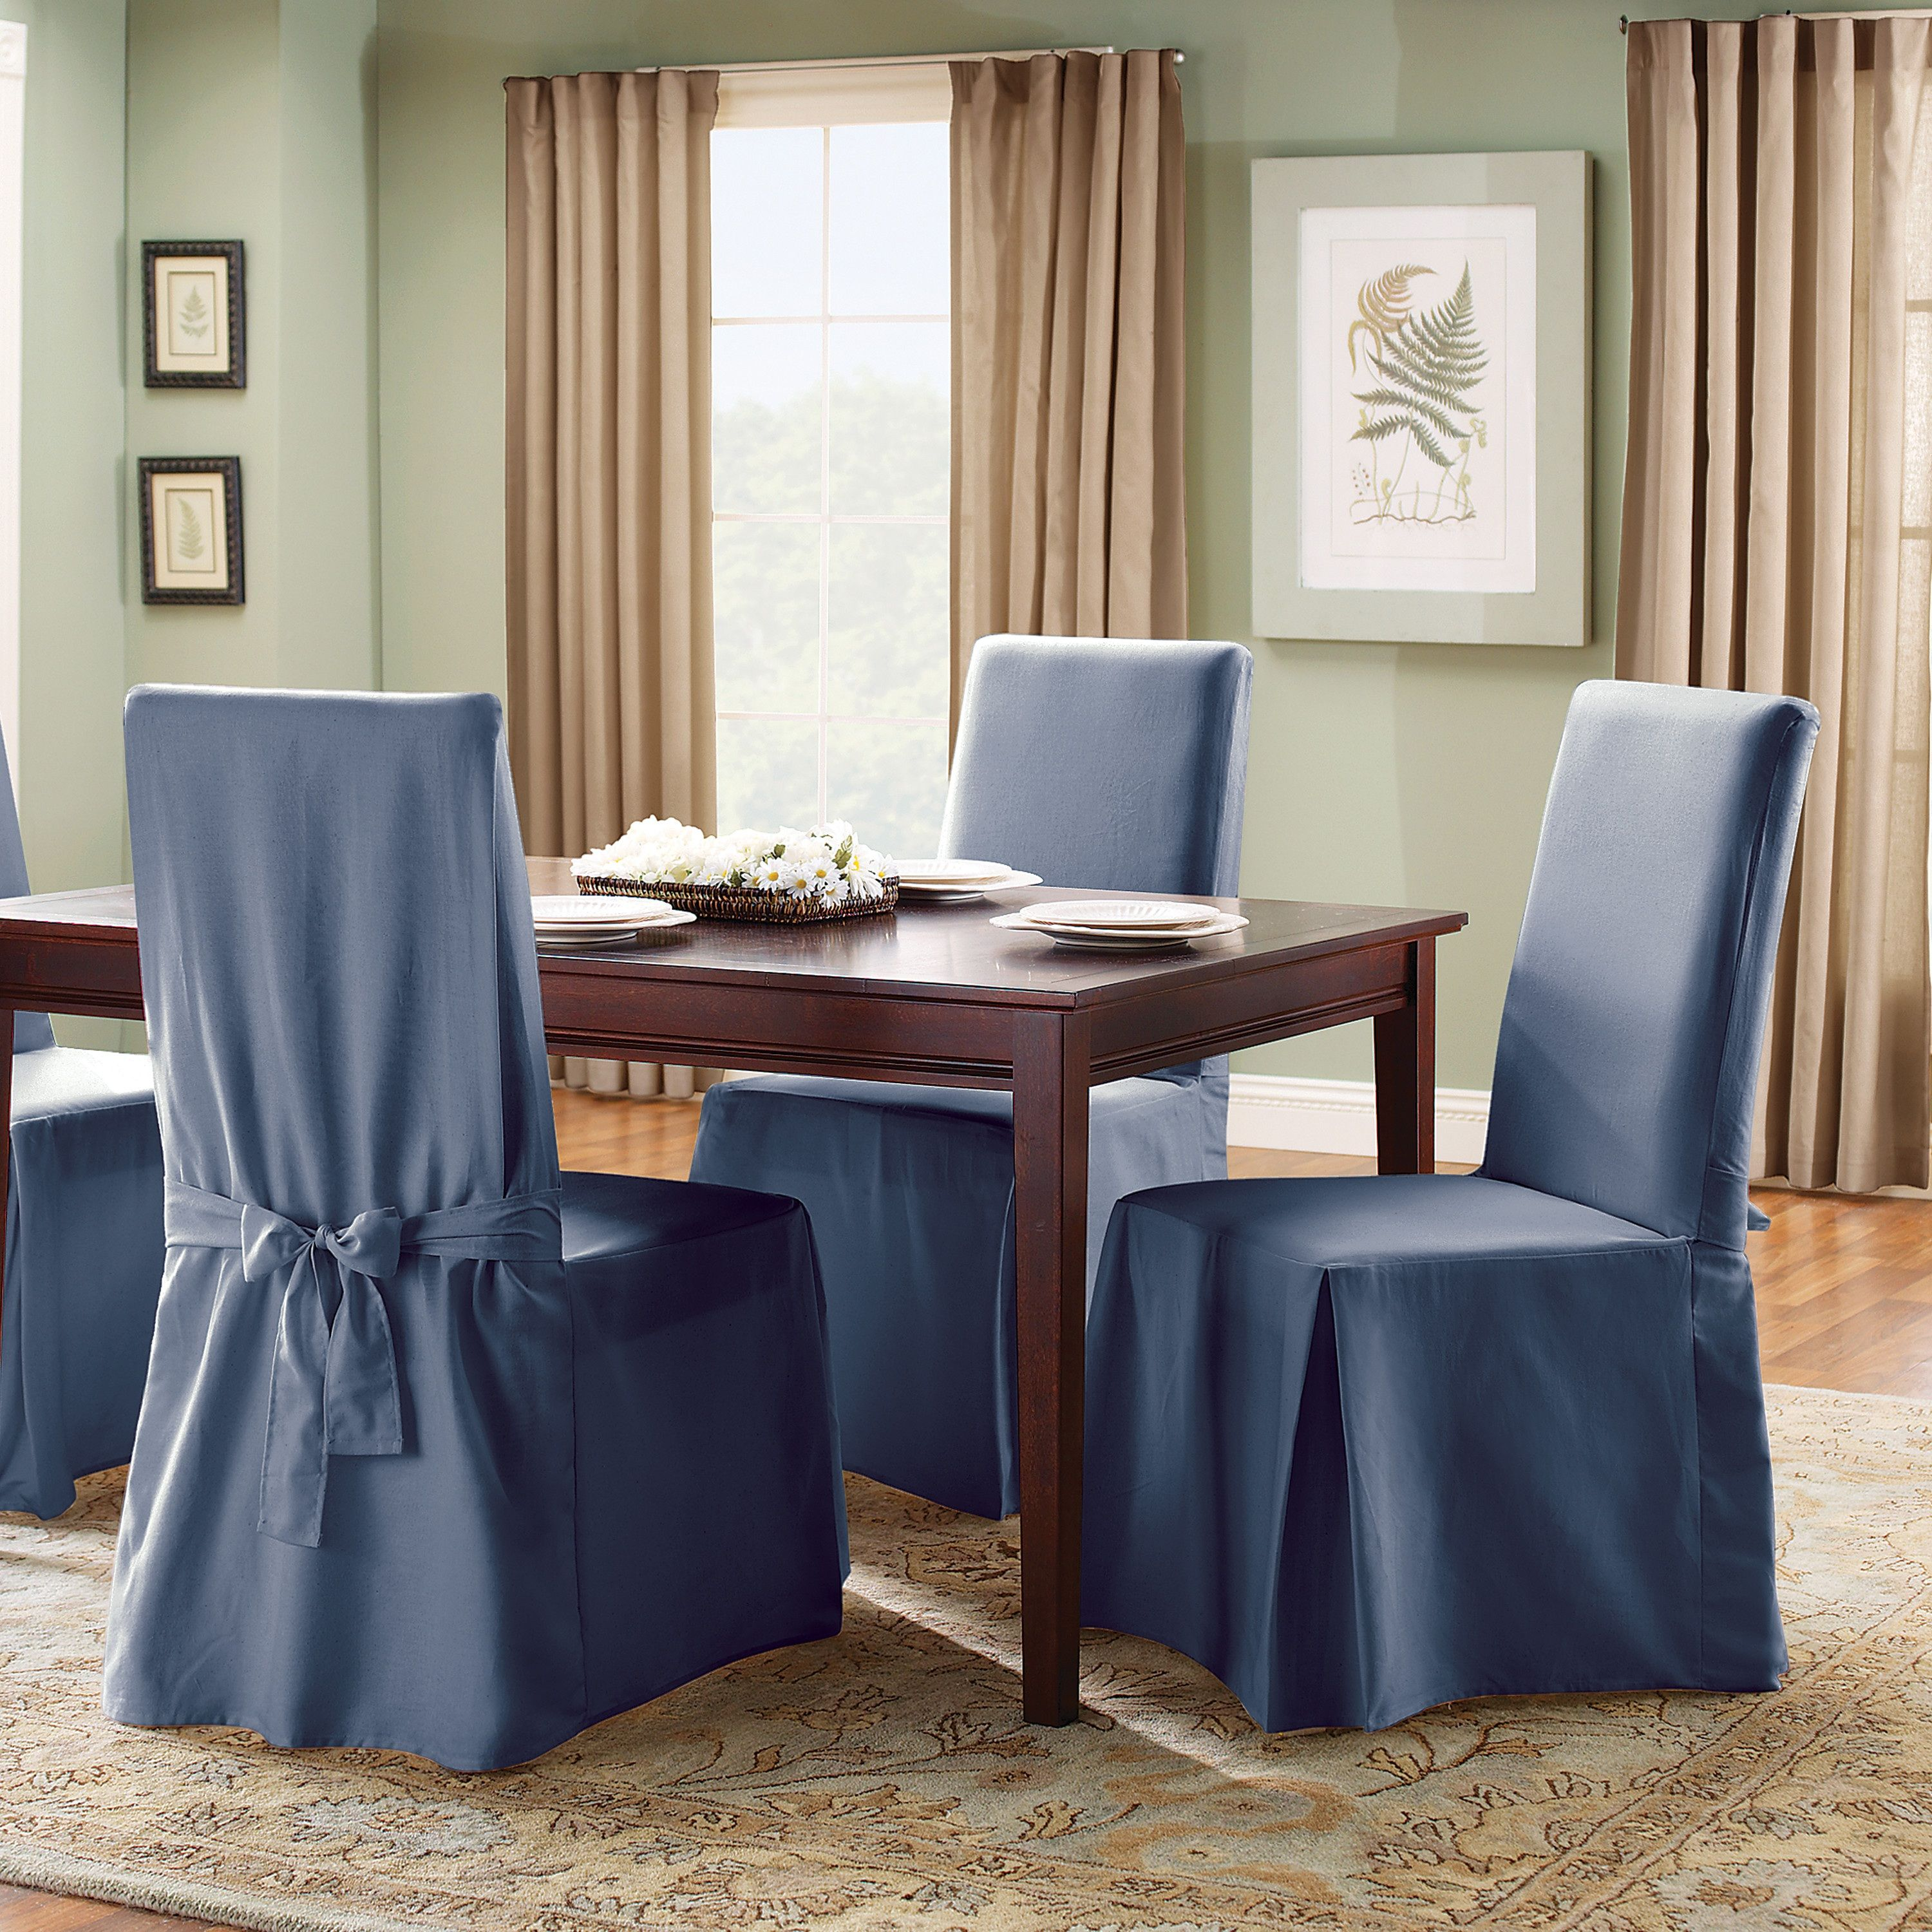 Mesmerizing Dining Room Chair Slipcovers  Dining Room  Pinterest Custom Seat Cover Dining Room Chair Design Decoration